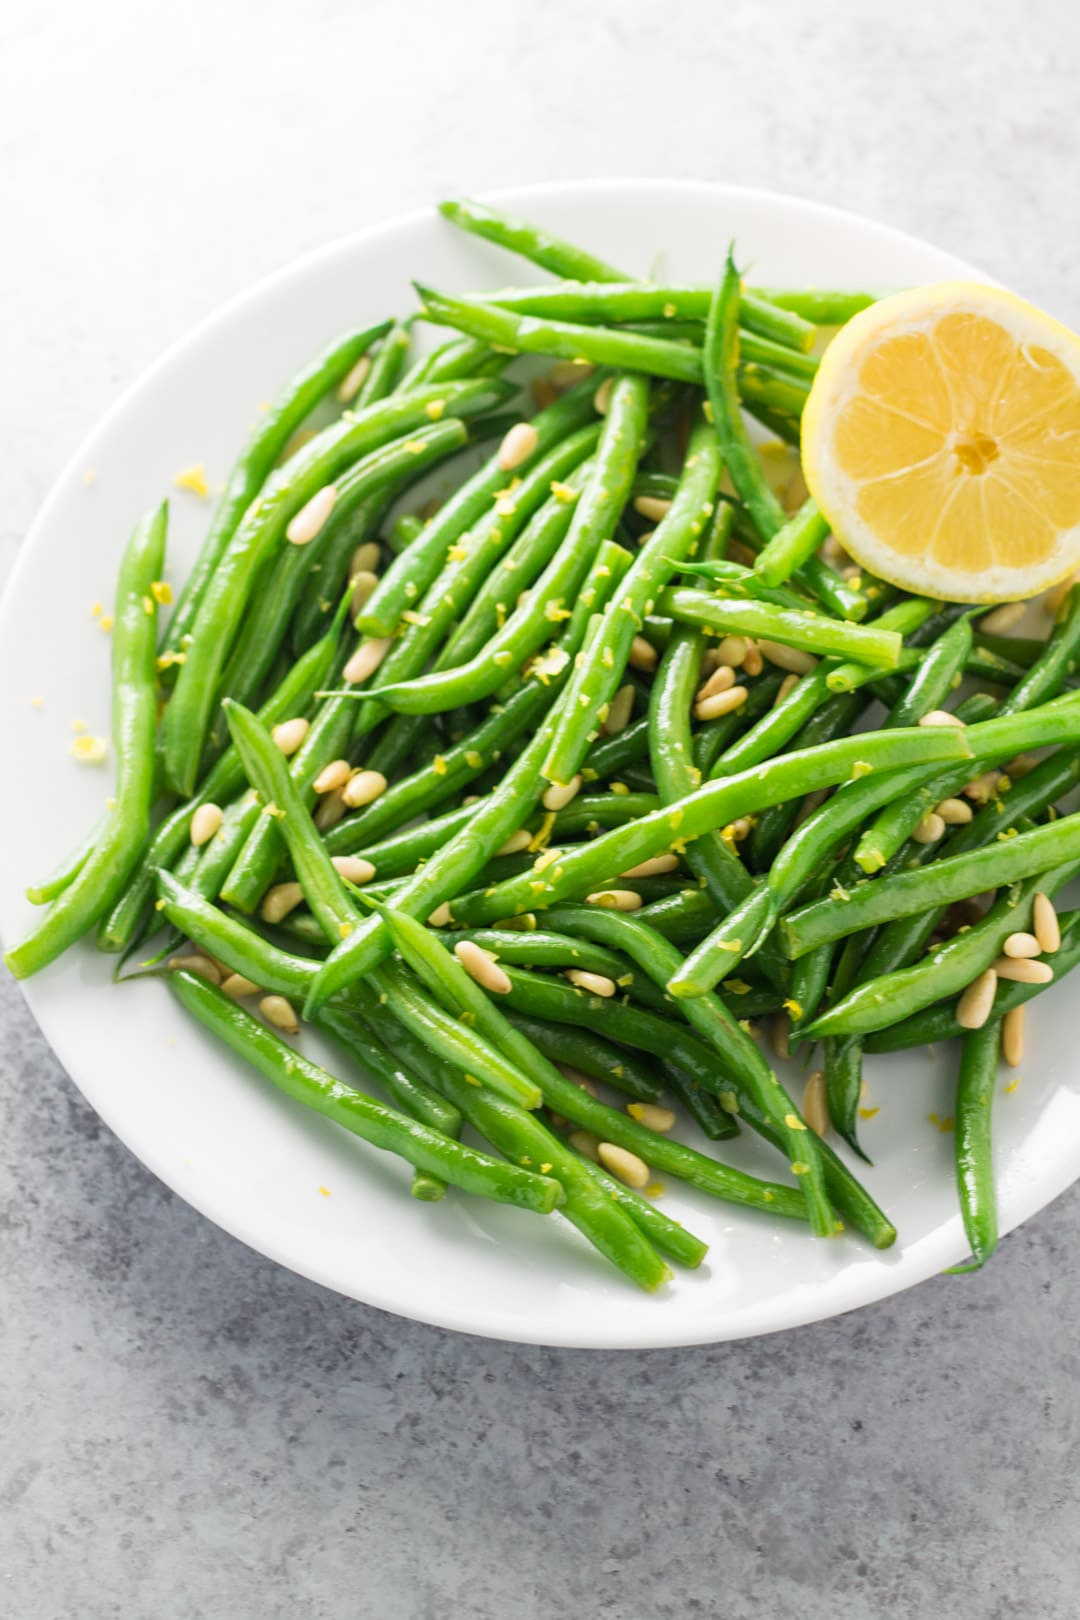 A plate filled with green beans dotted with toasted pine nuts and fresh lemon zest. A lemon half adorns the plate.